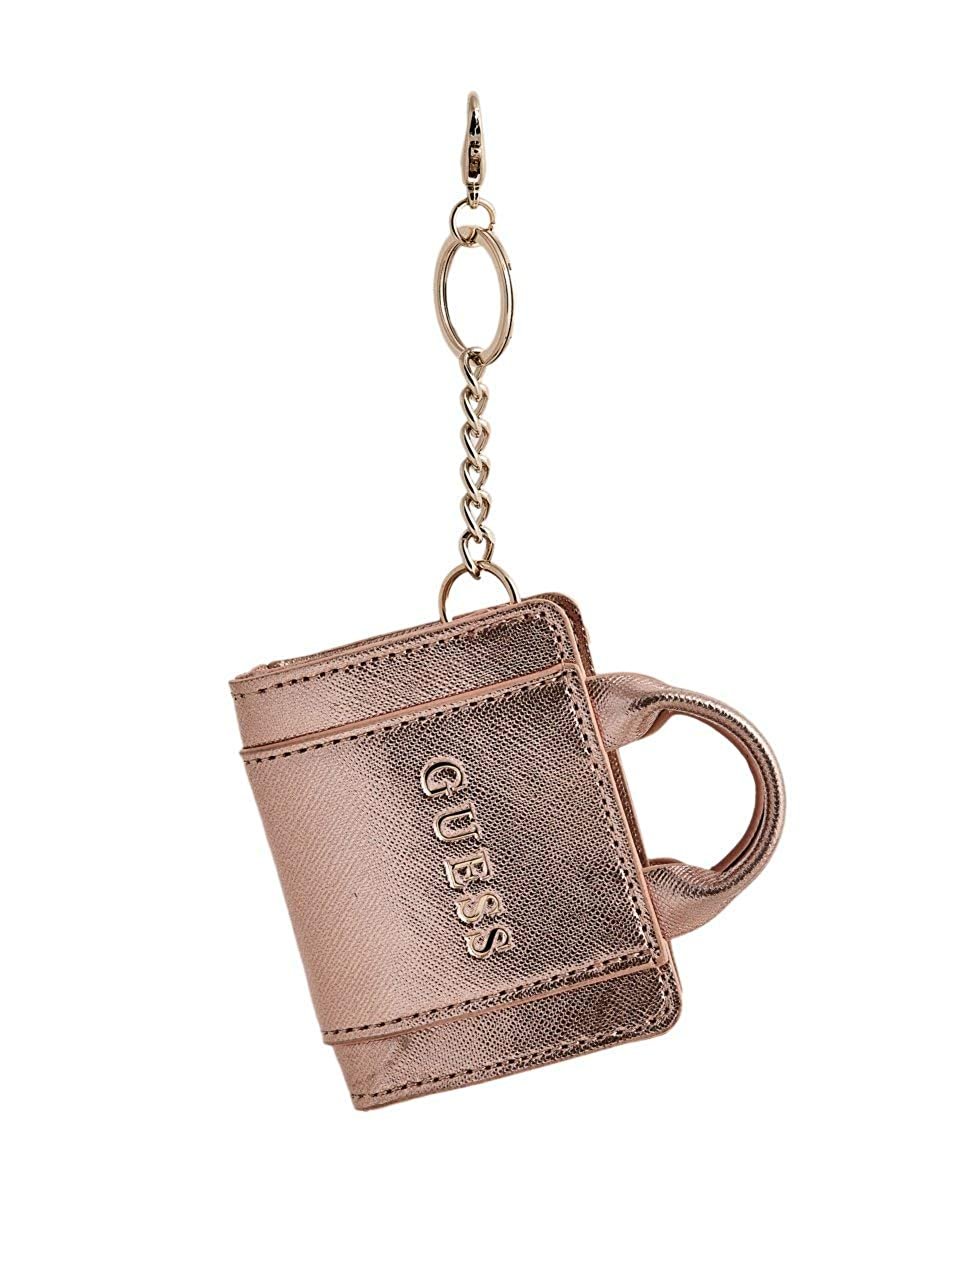 GUESS Factory Womens Taylor Satchel Keychain